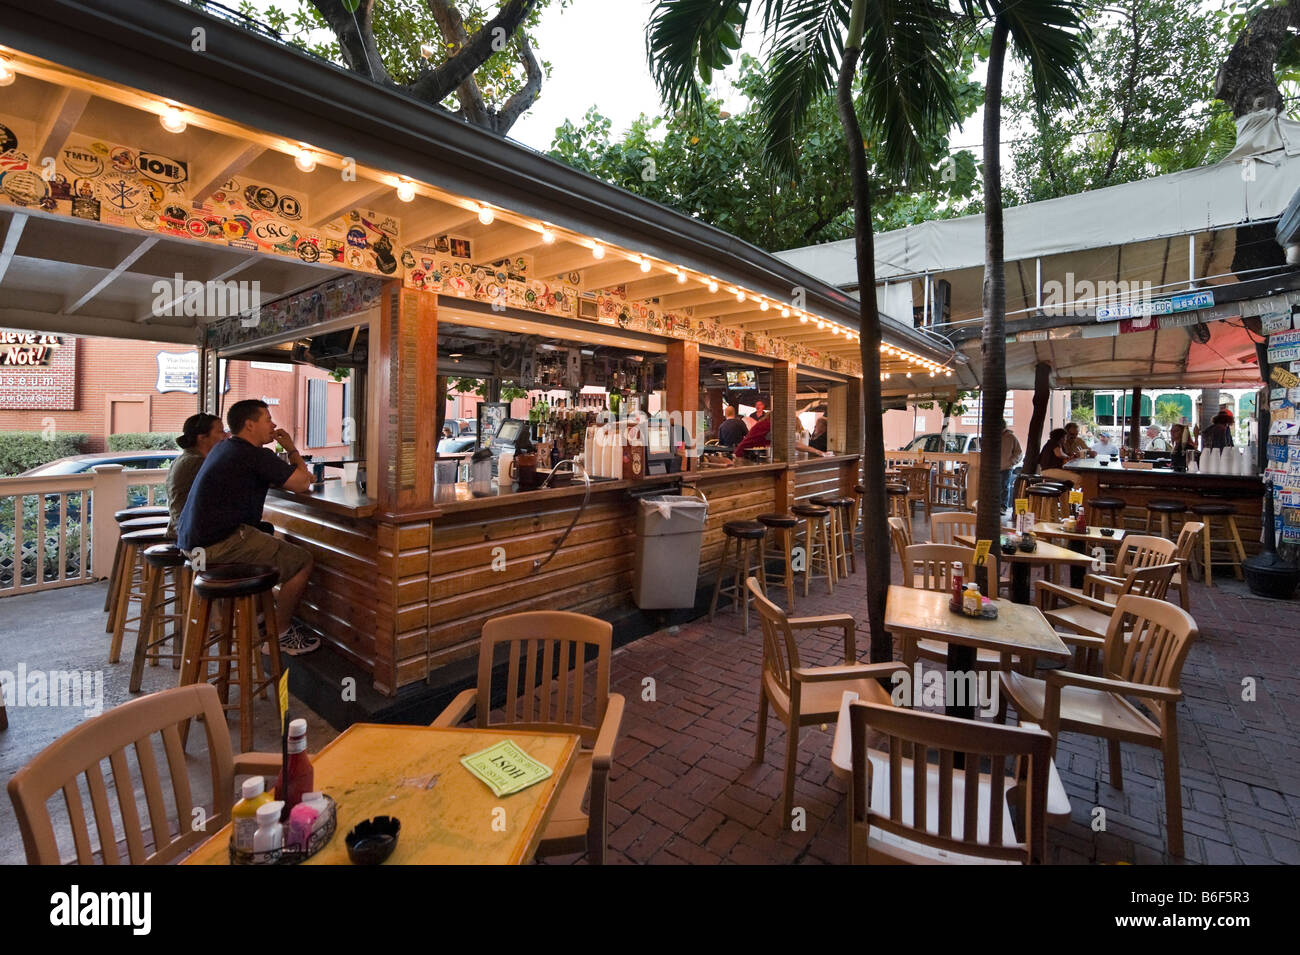 Early evening in the Hogs Breath Saloon, just off Duval Street in the old town, Key West, Florida Keys, USA - Stock Image